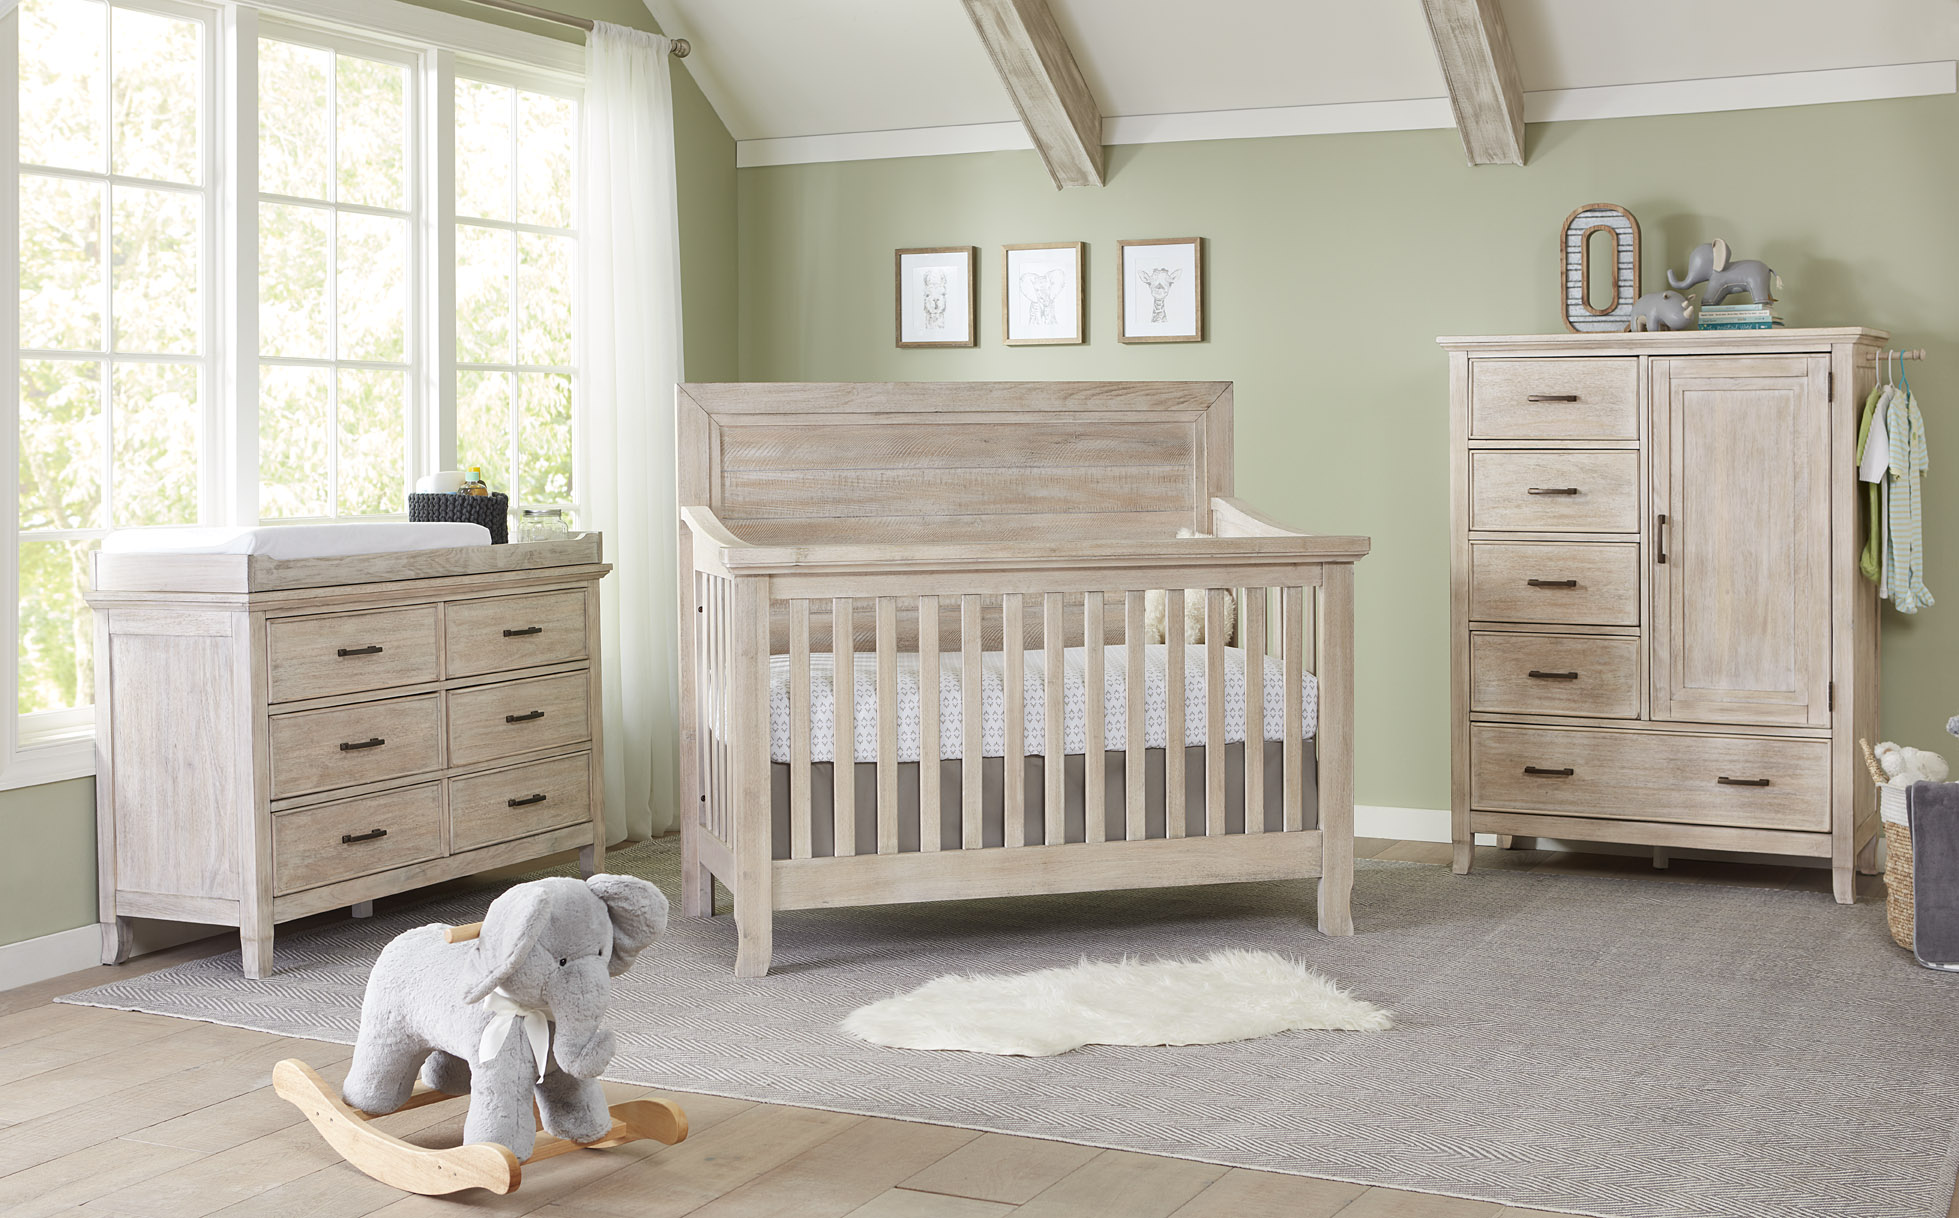 Stella Baby Remi Flat Top Crib and Dressers - Sugarcoat